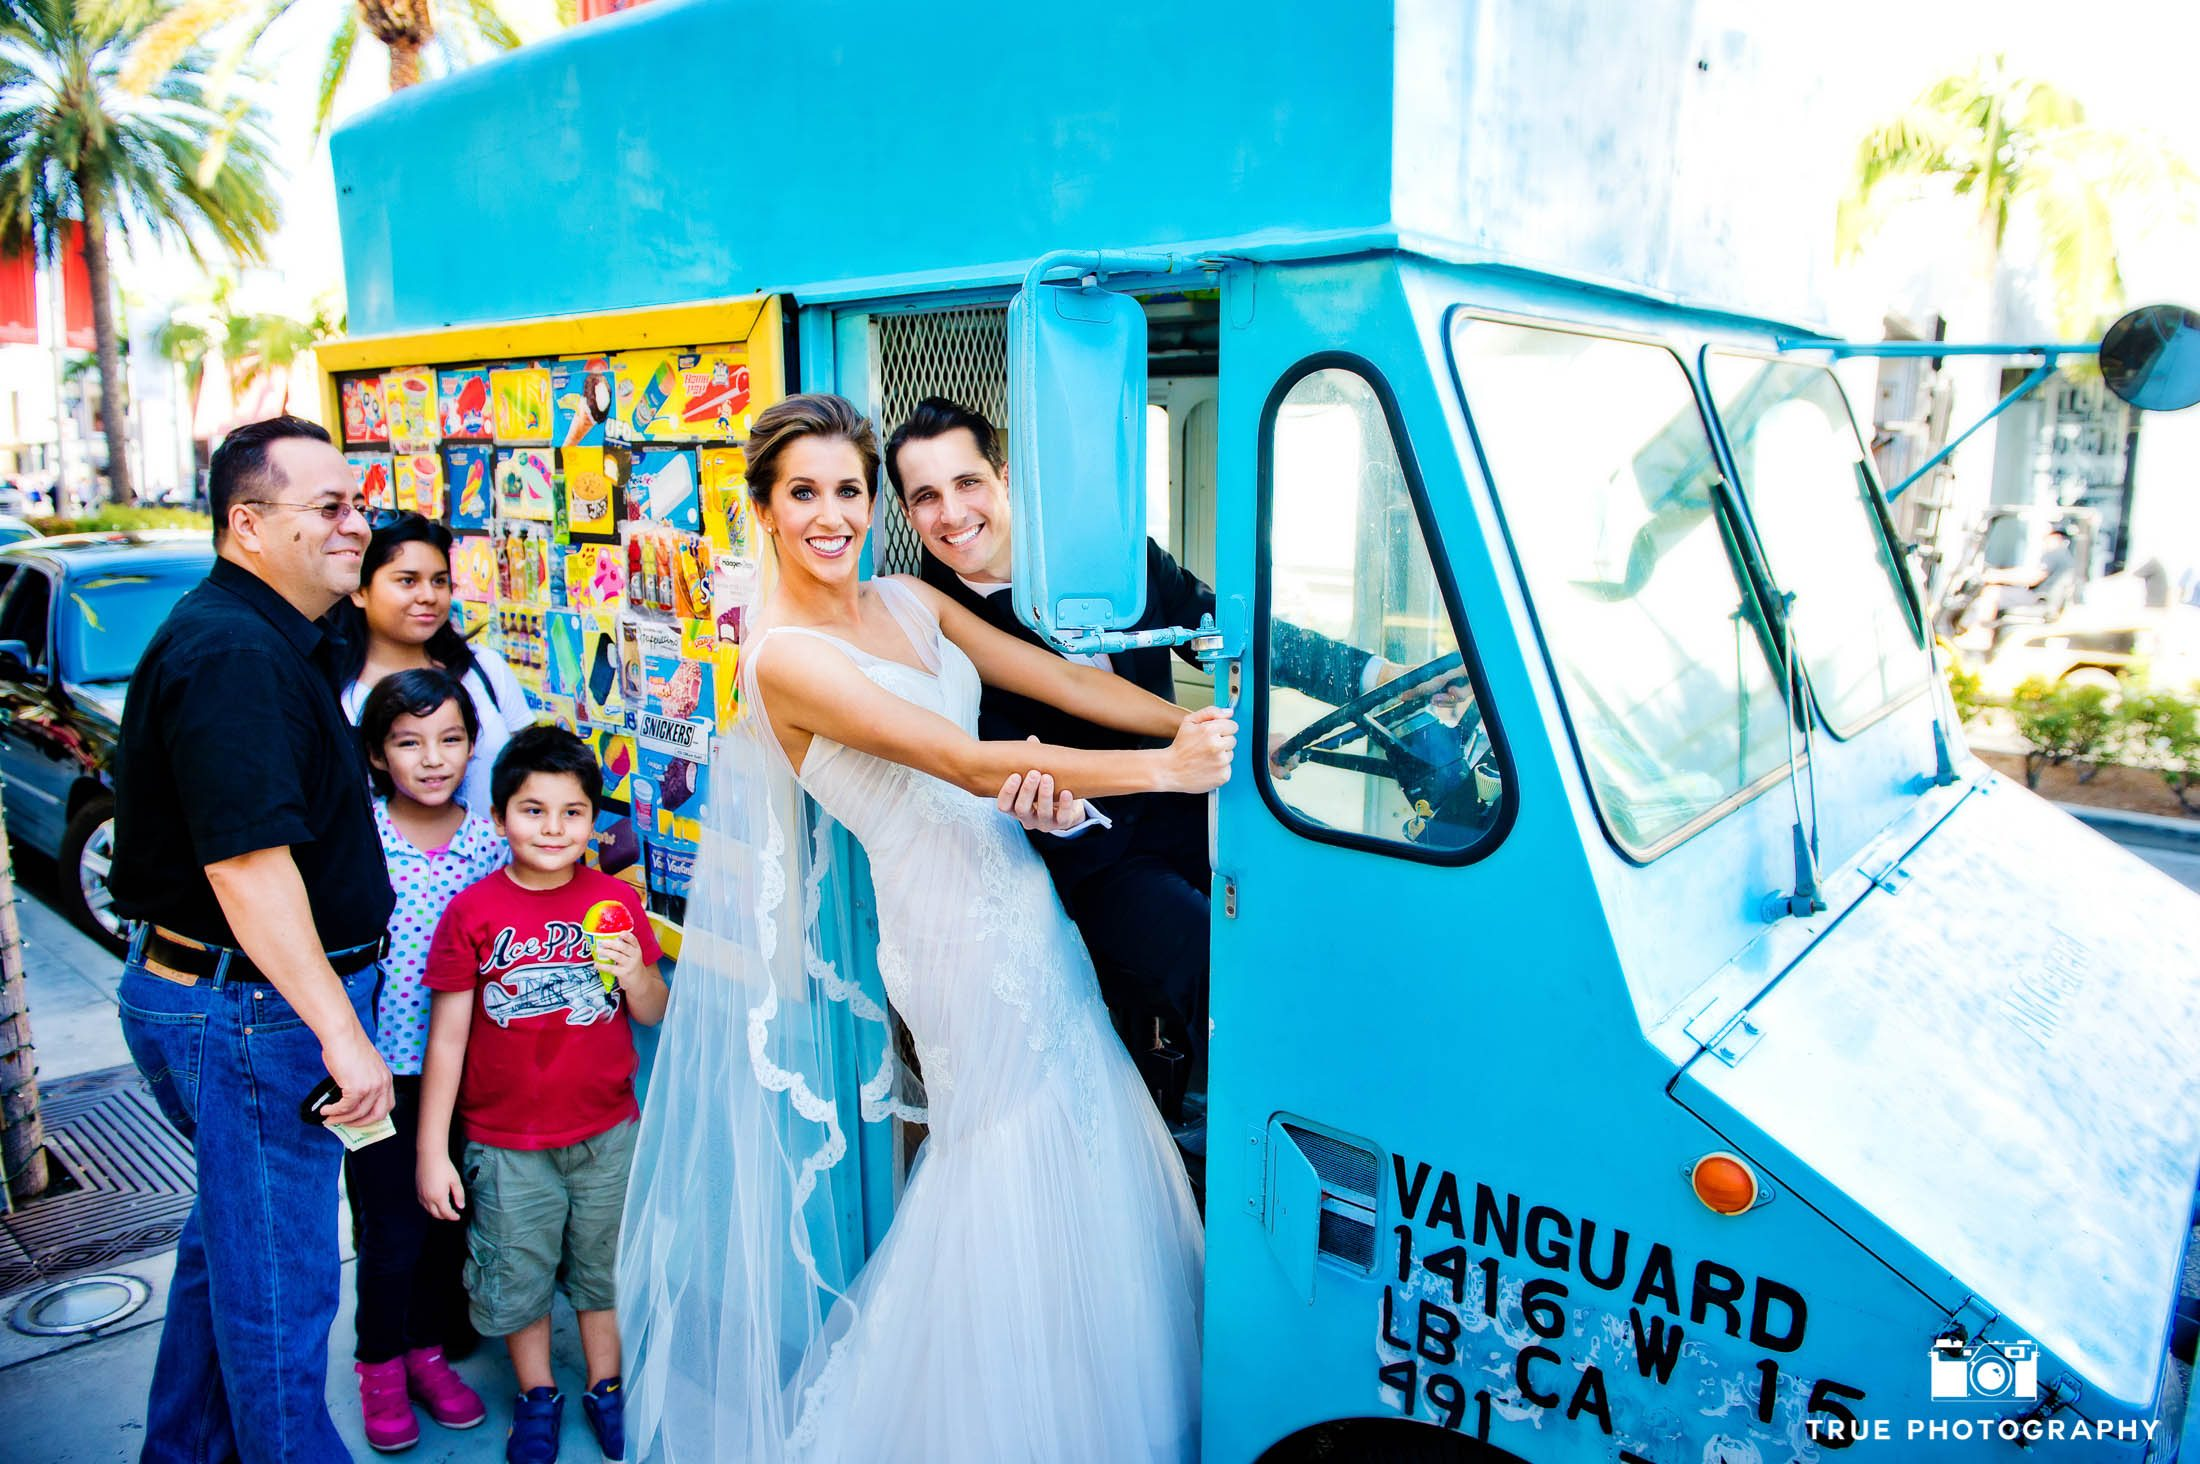 Bride and Groom stand in door of ice cream truck after wedding ceremony